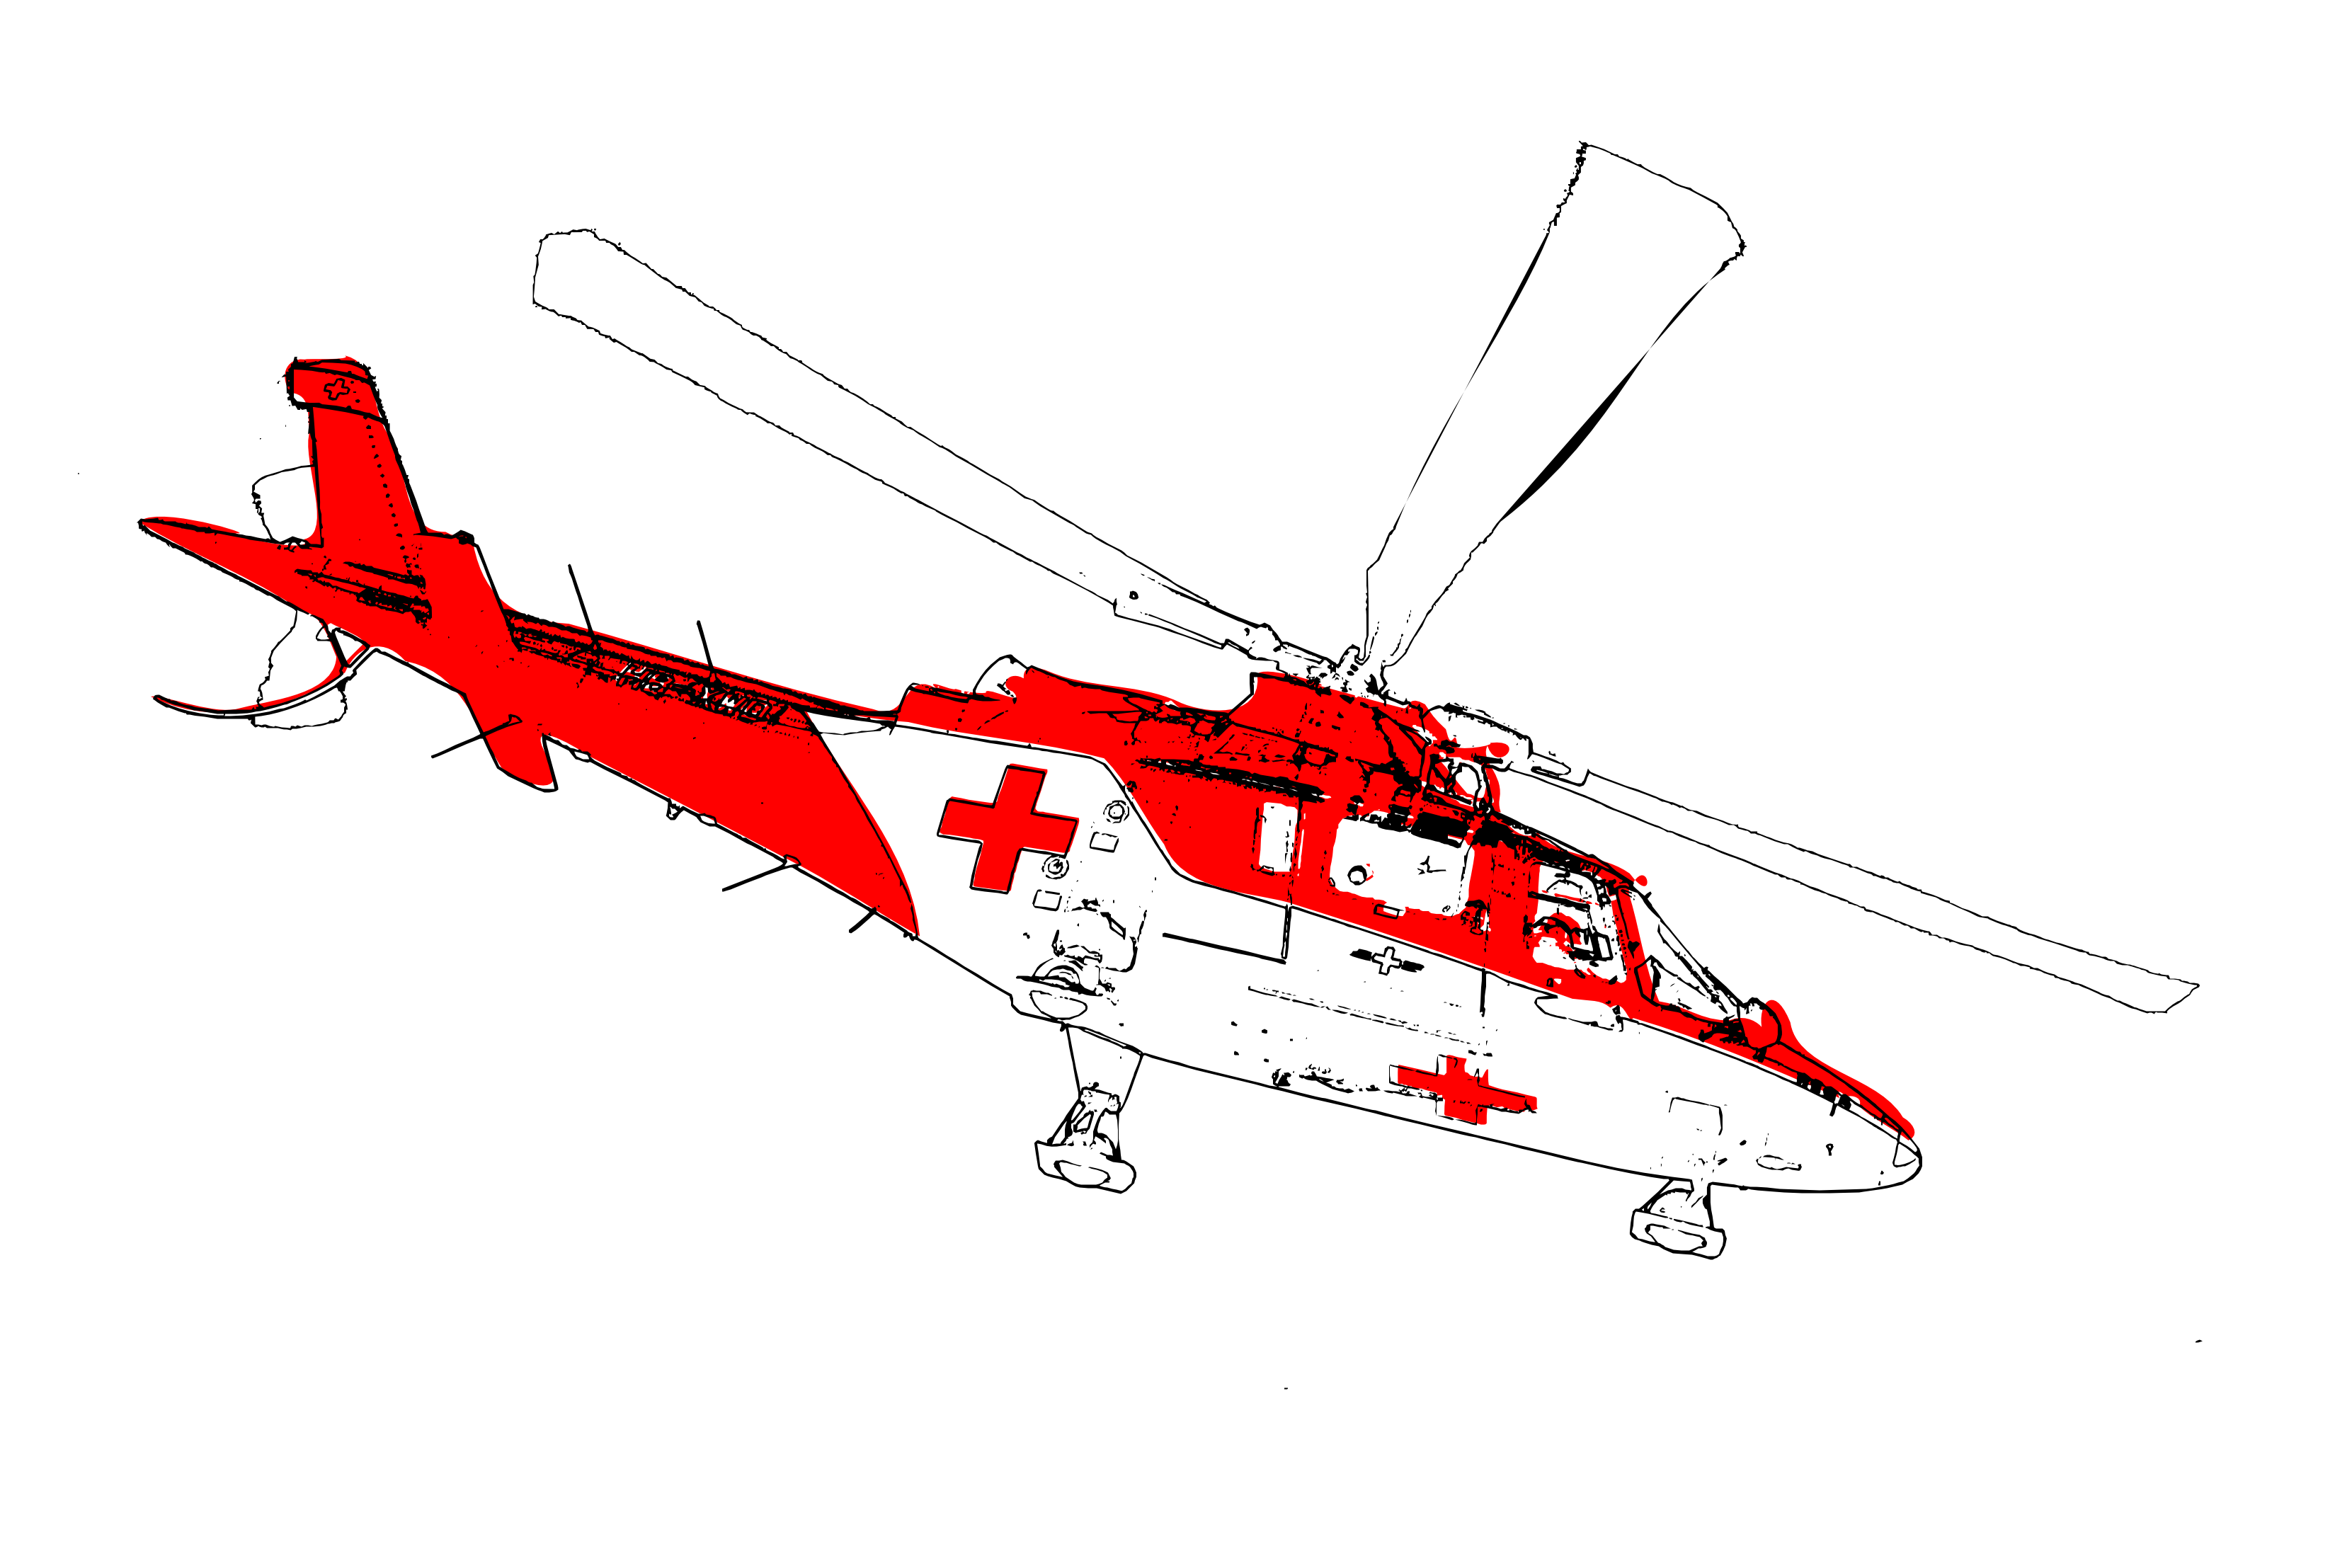 file pilatus agusta a109 flug draw png wikimedia commons free military clipart images free military clipart images